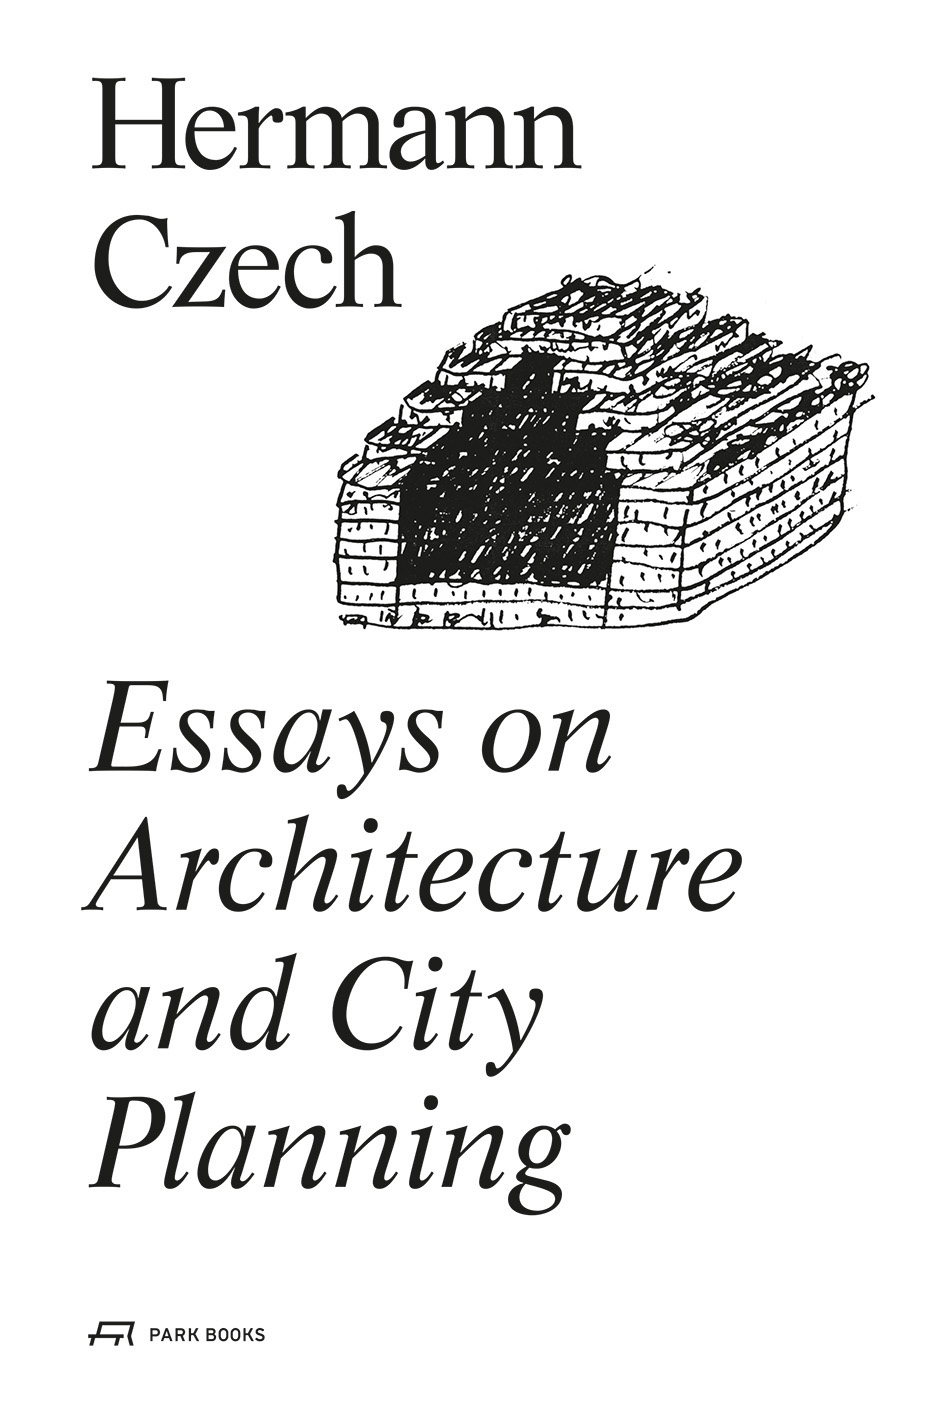 Narrative Essay Topics For High School Essays On Architecture And City Planning Hermann Czech How To Write Essay Proposal also Professional Writing Website Essays On Architecture And City Planning Czech Feiersinger Thesis Example For Compare And Contrast Essay